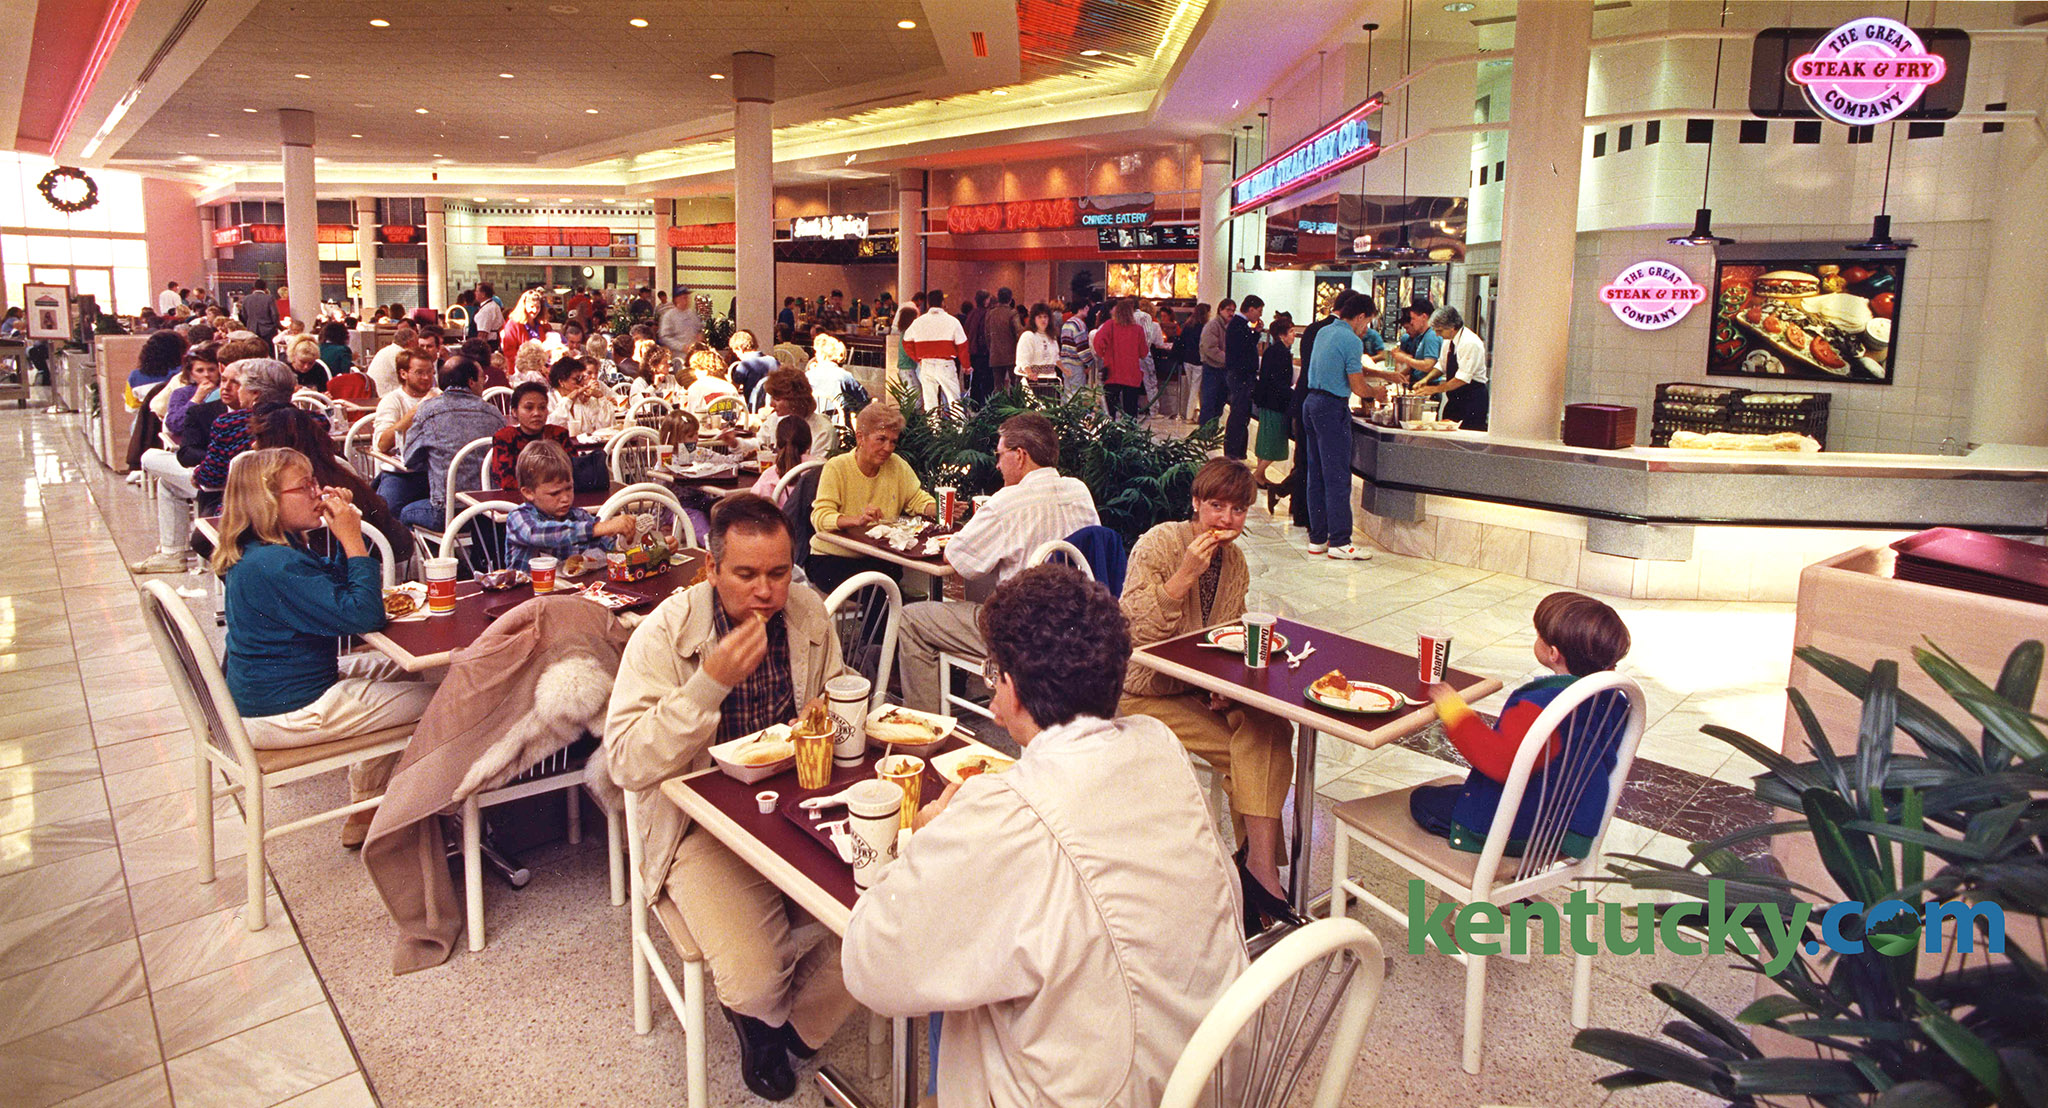 The Pavilion Food Court In Fayette Mall Was Packed With Hungry Pers On Nov 18 1990 A Soothing Mix Of Marble Sunlight And Neon S New